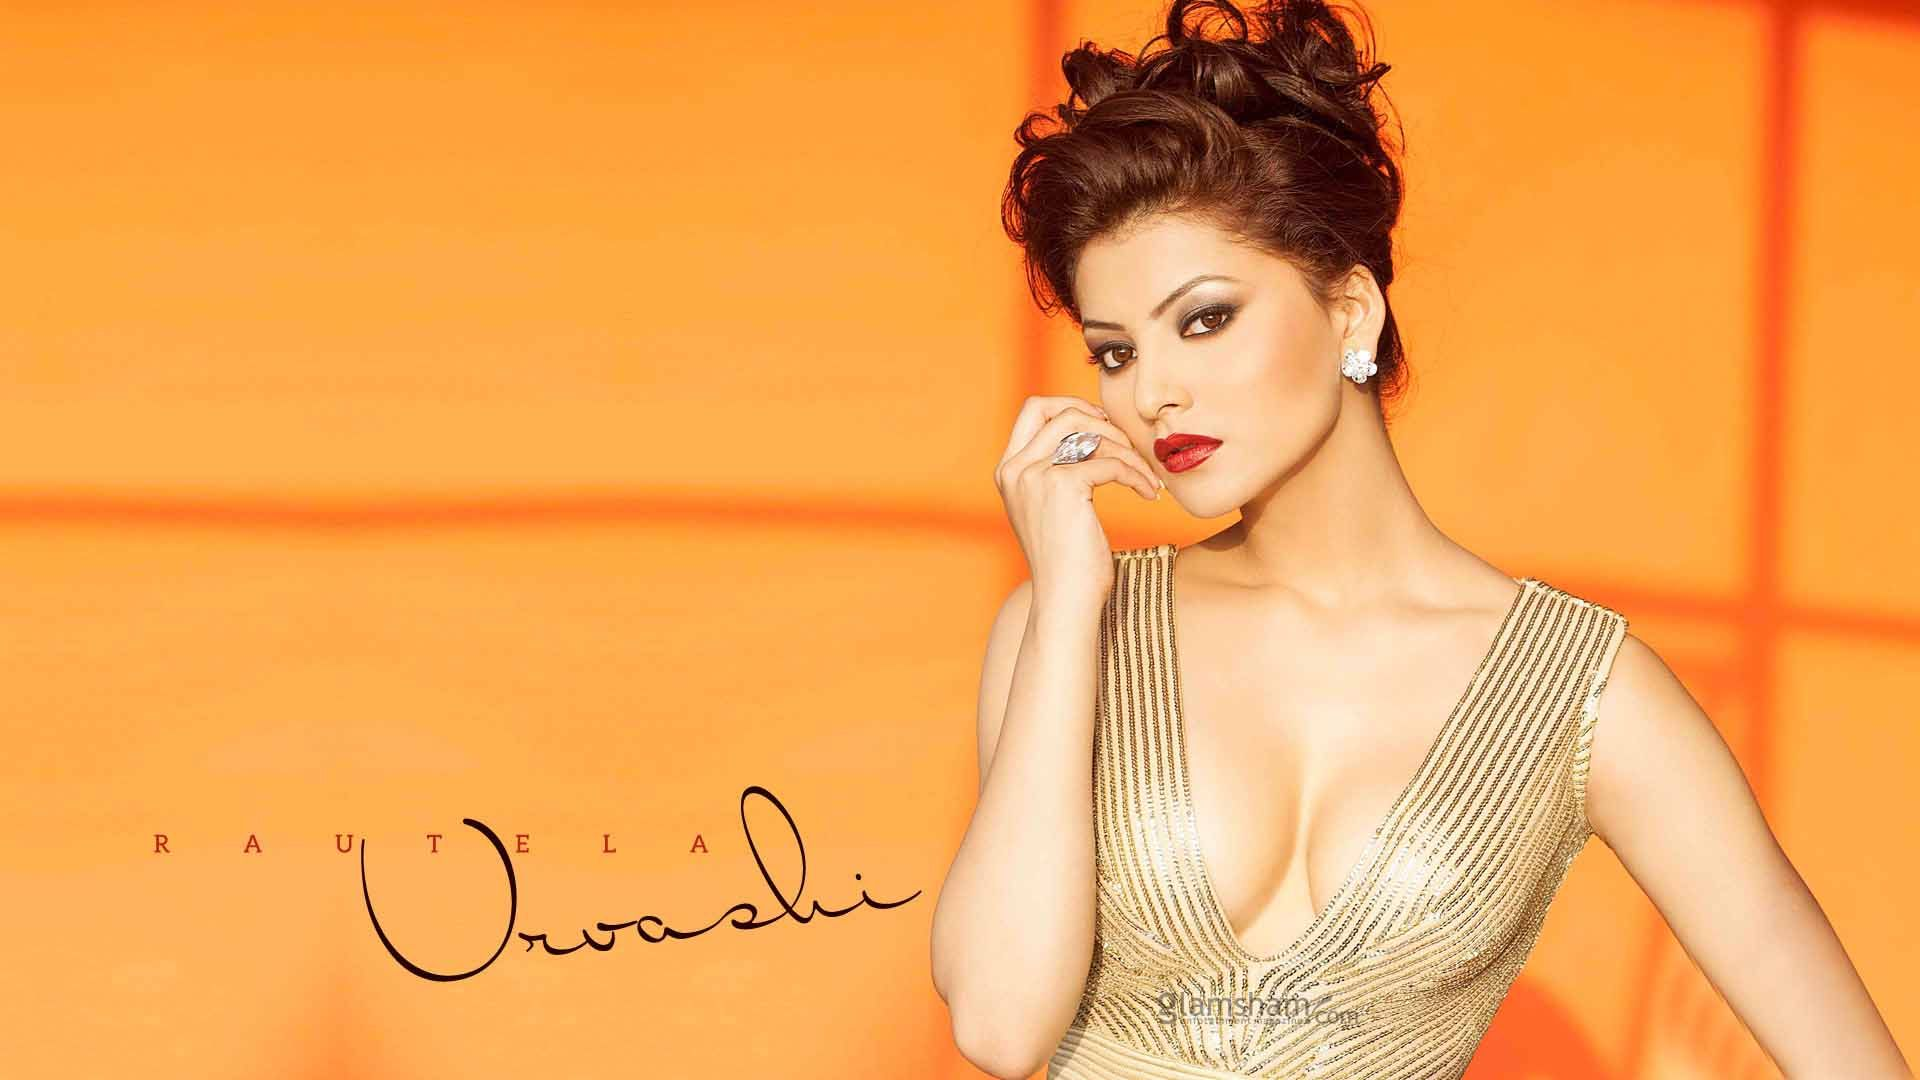 Hd wallpaper urvashi - Urvashi Rautela Hd Images Pictures Photos Hd Wallpapers Urvashi Rautela Pinterest Hd Images And Picture Photo